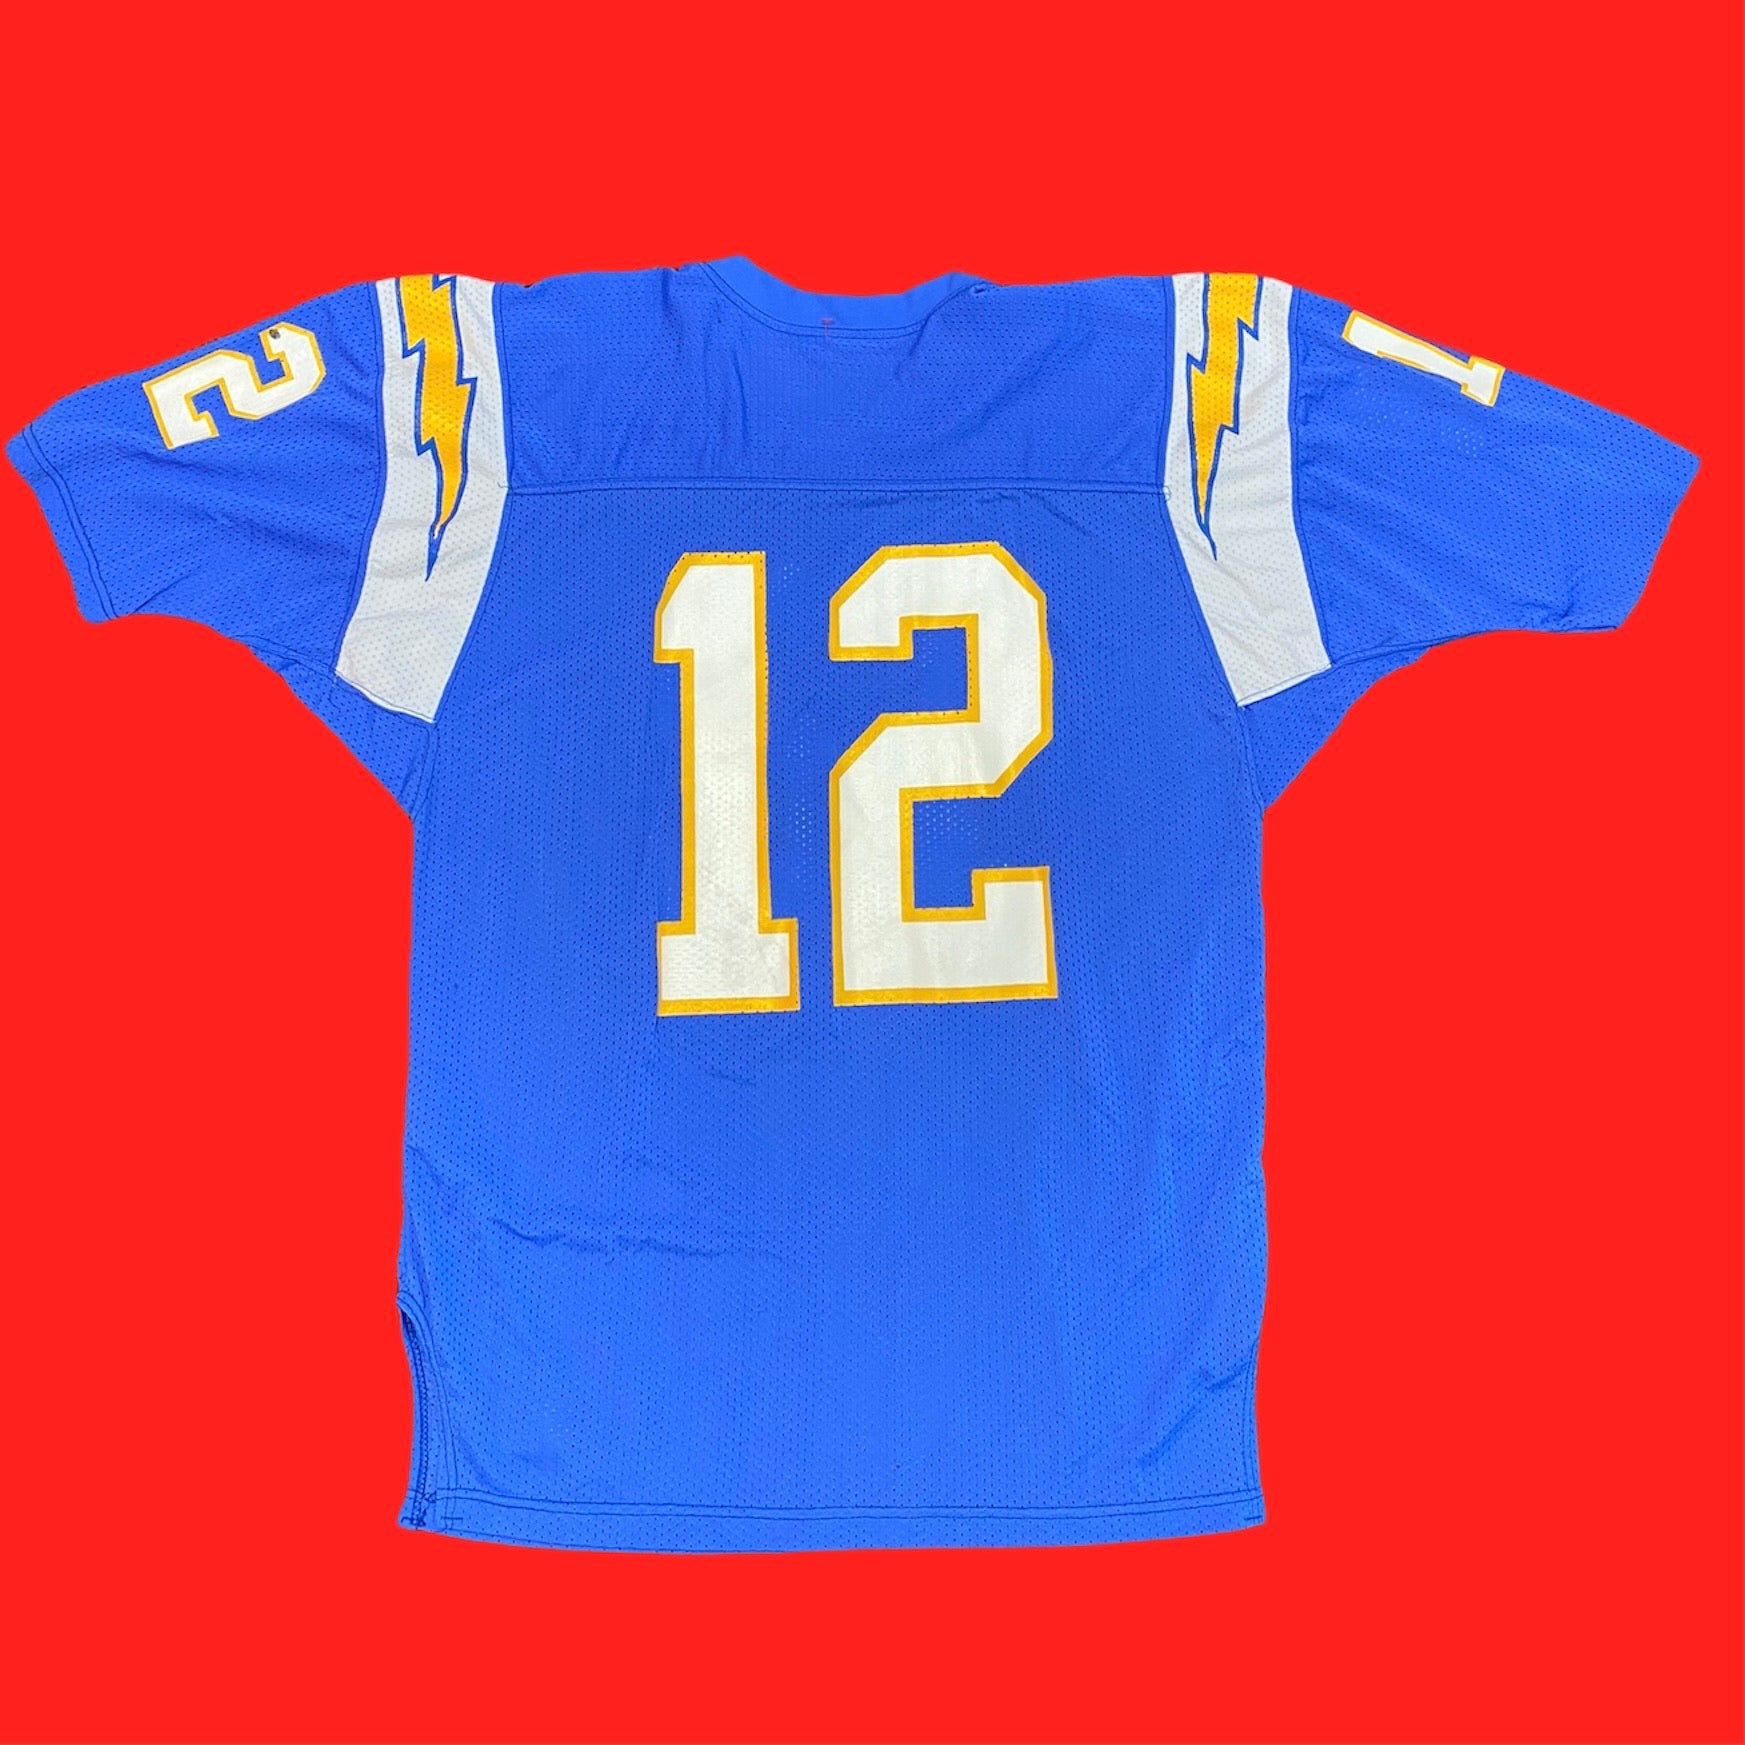 Chargers 75 Years Russell Jersey XL